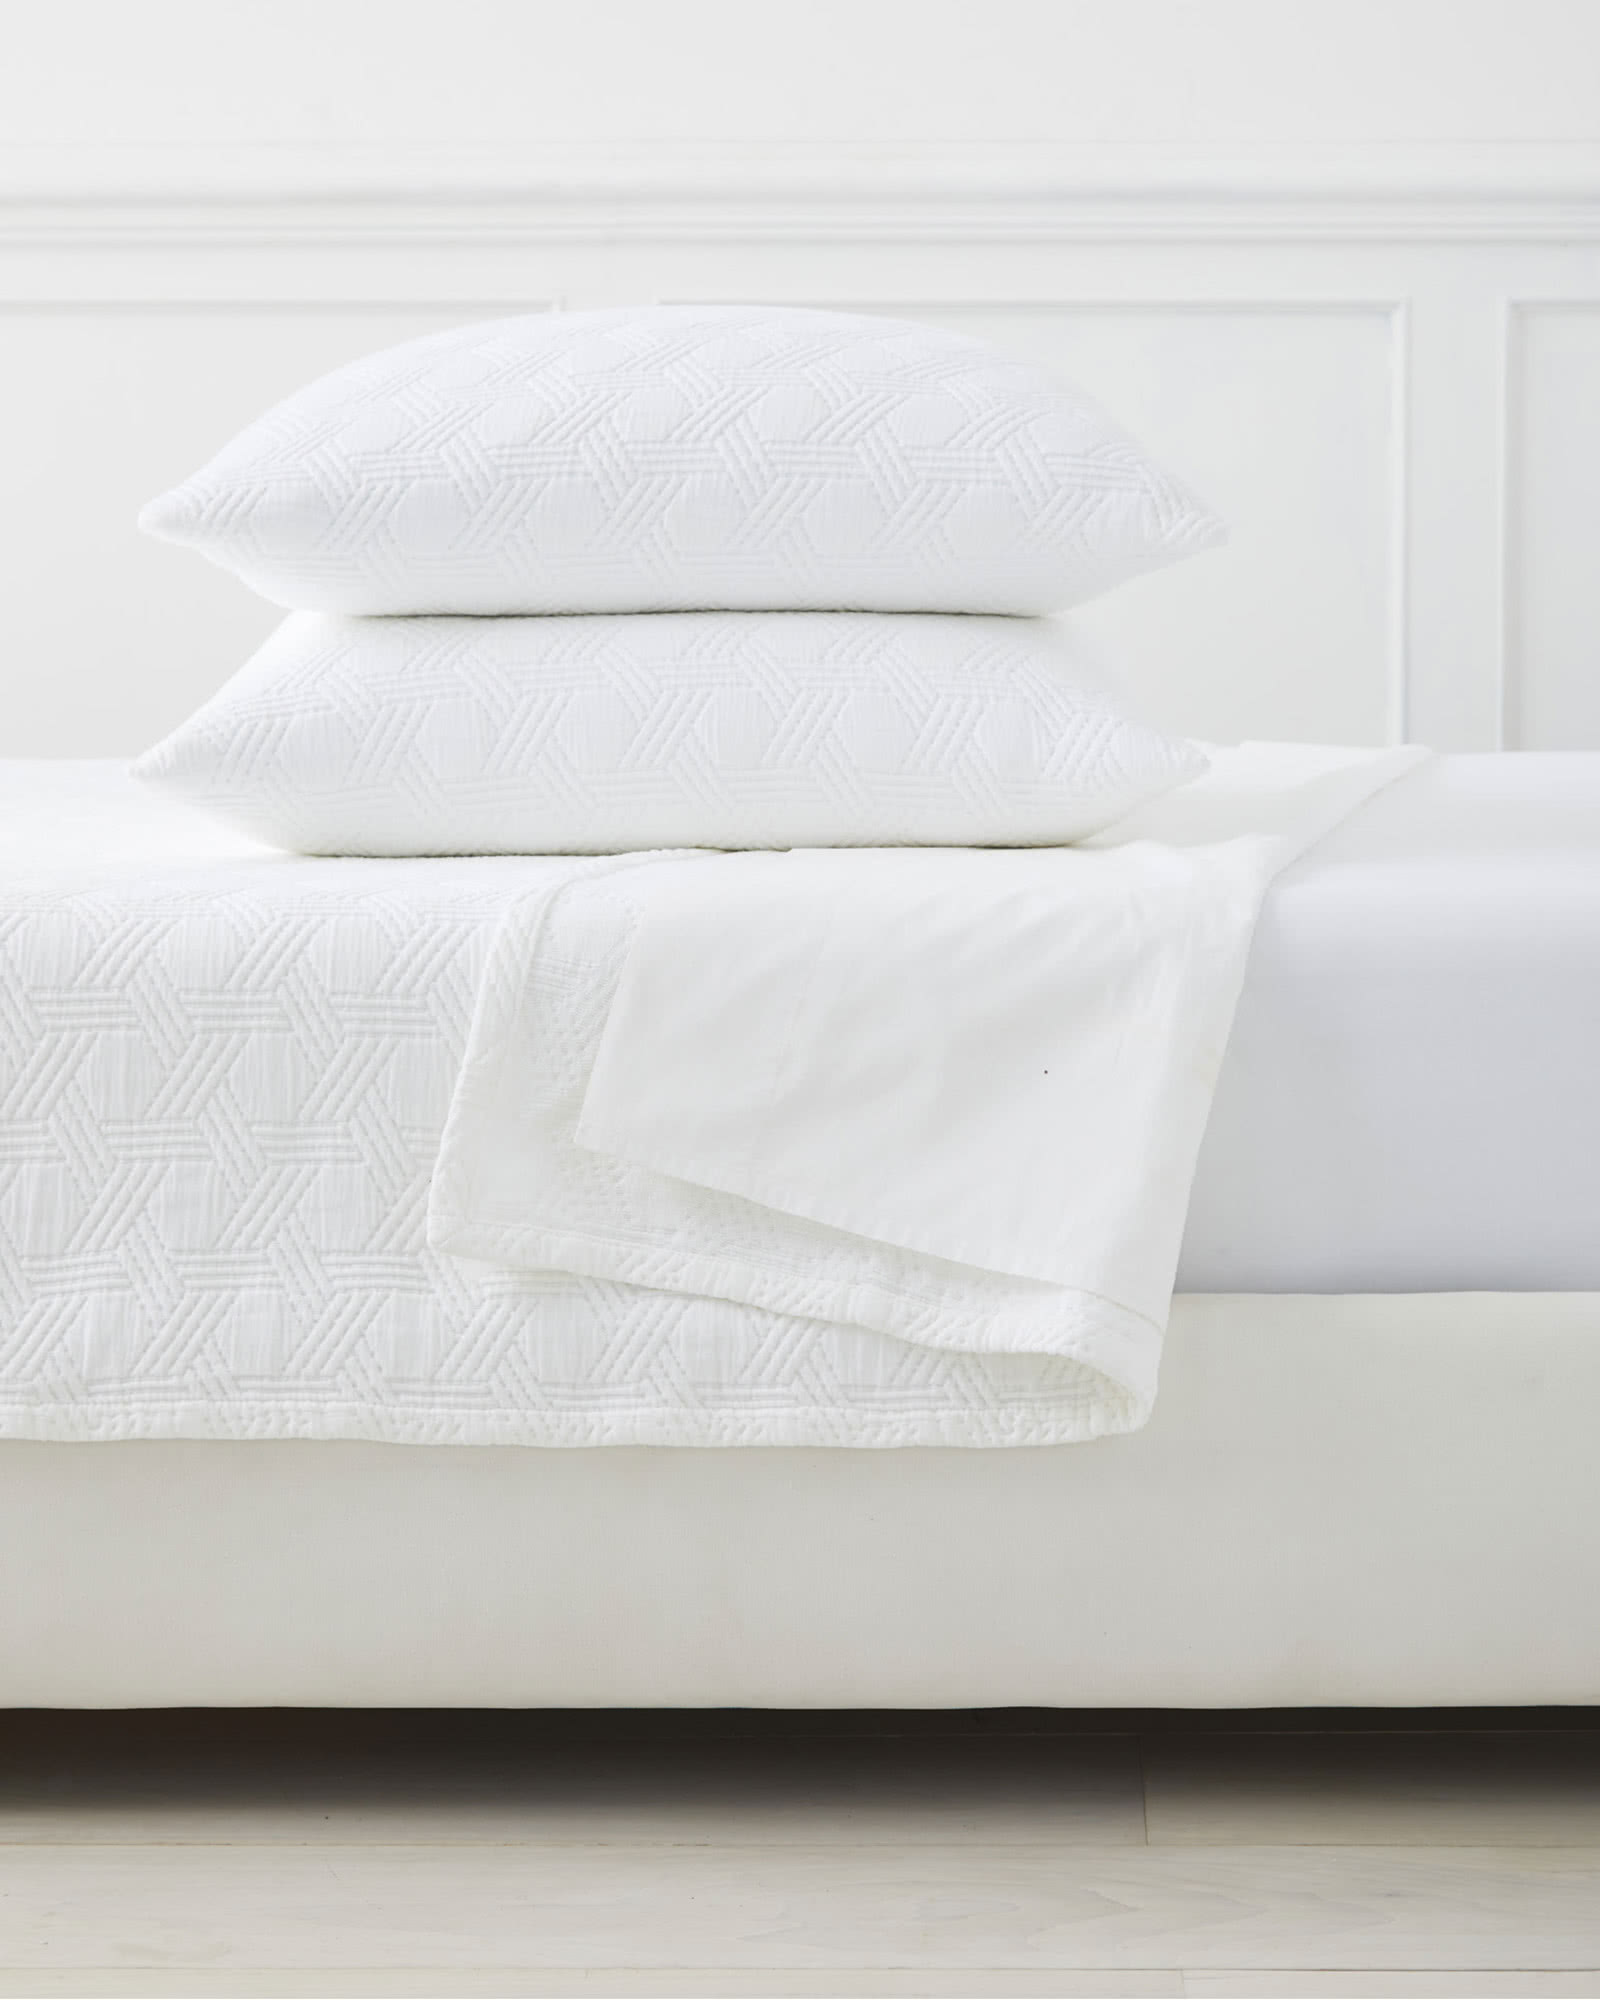 ll idea chenille luxury bedroom bedspreads white for comforters bed dillards size bedding bean covering bedspread matelasse fascinating king coverlets ma coverlet cotton